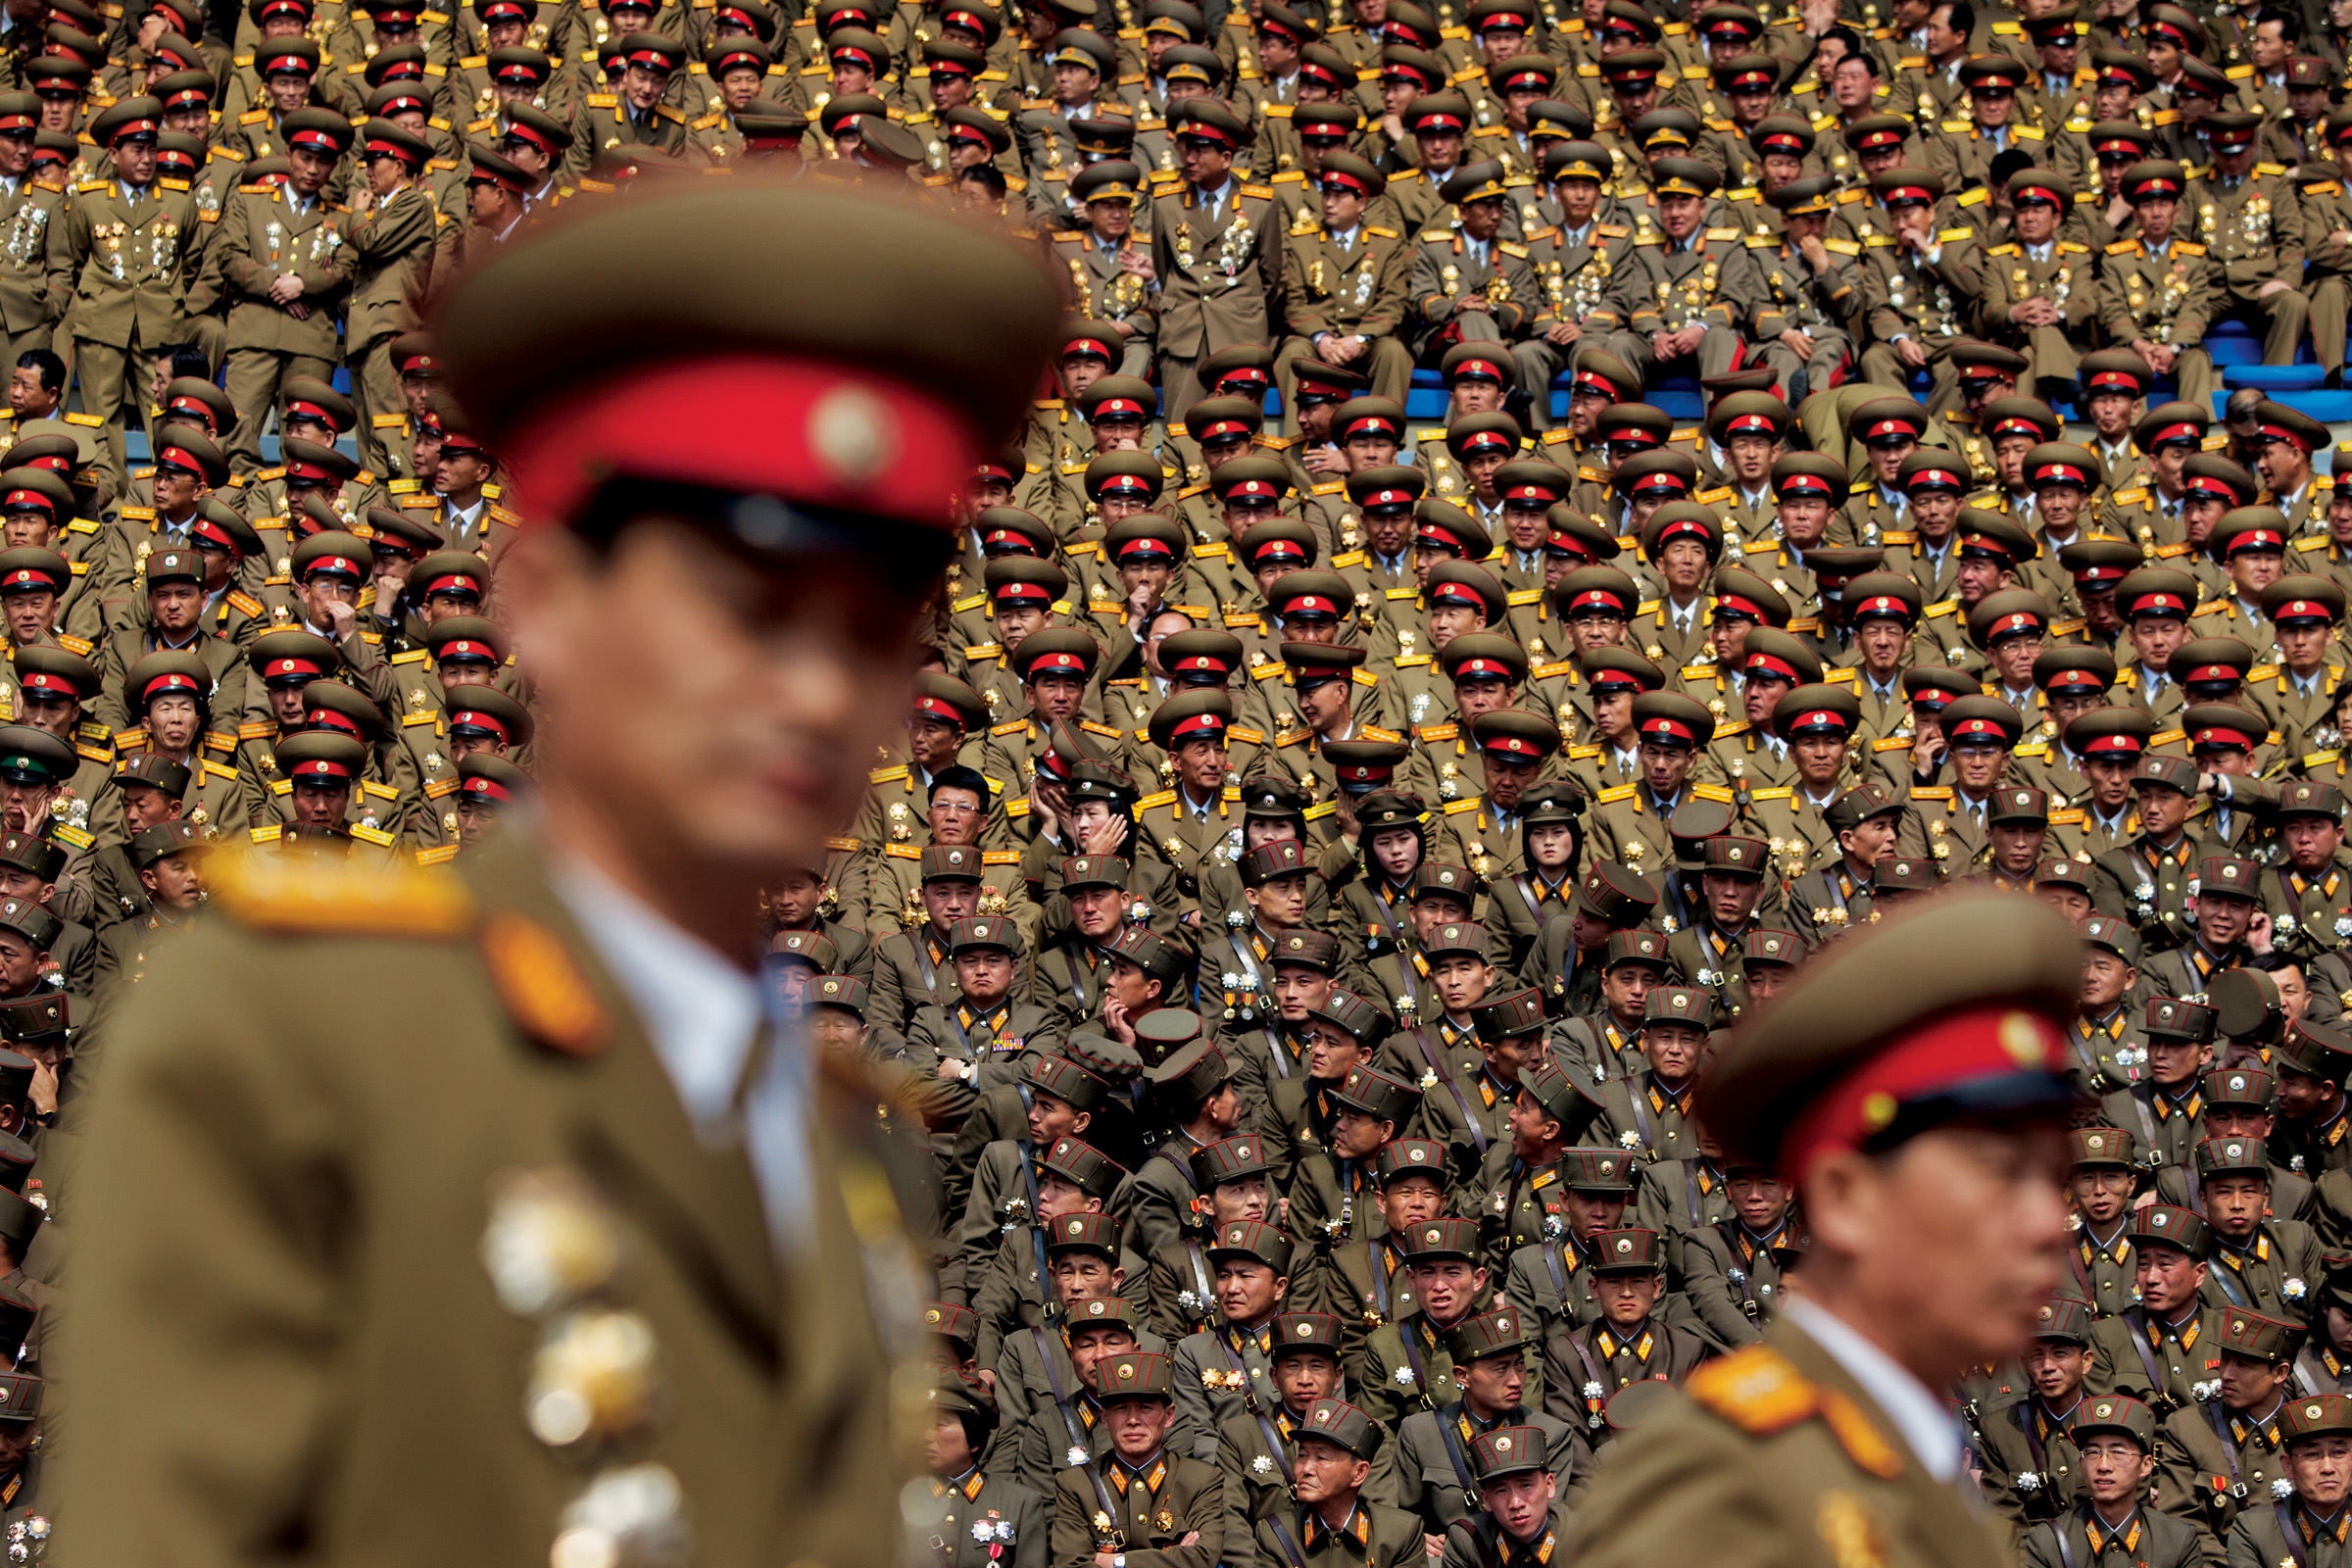 Members of one of the world's largest militaries, over a million strong, pack a stadium in Pyongyang in 2012 during celebrations honoring North Korea's first leader, Kim Il Sung.